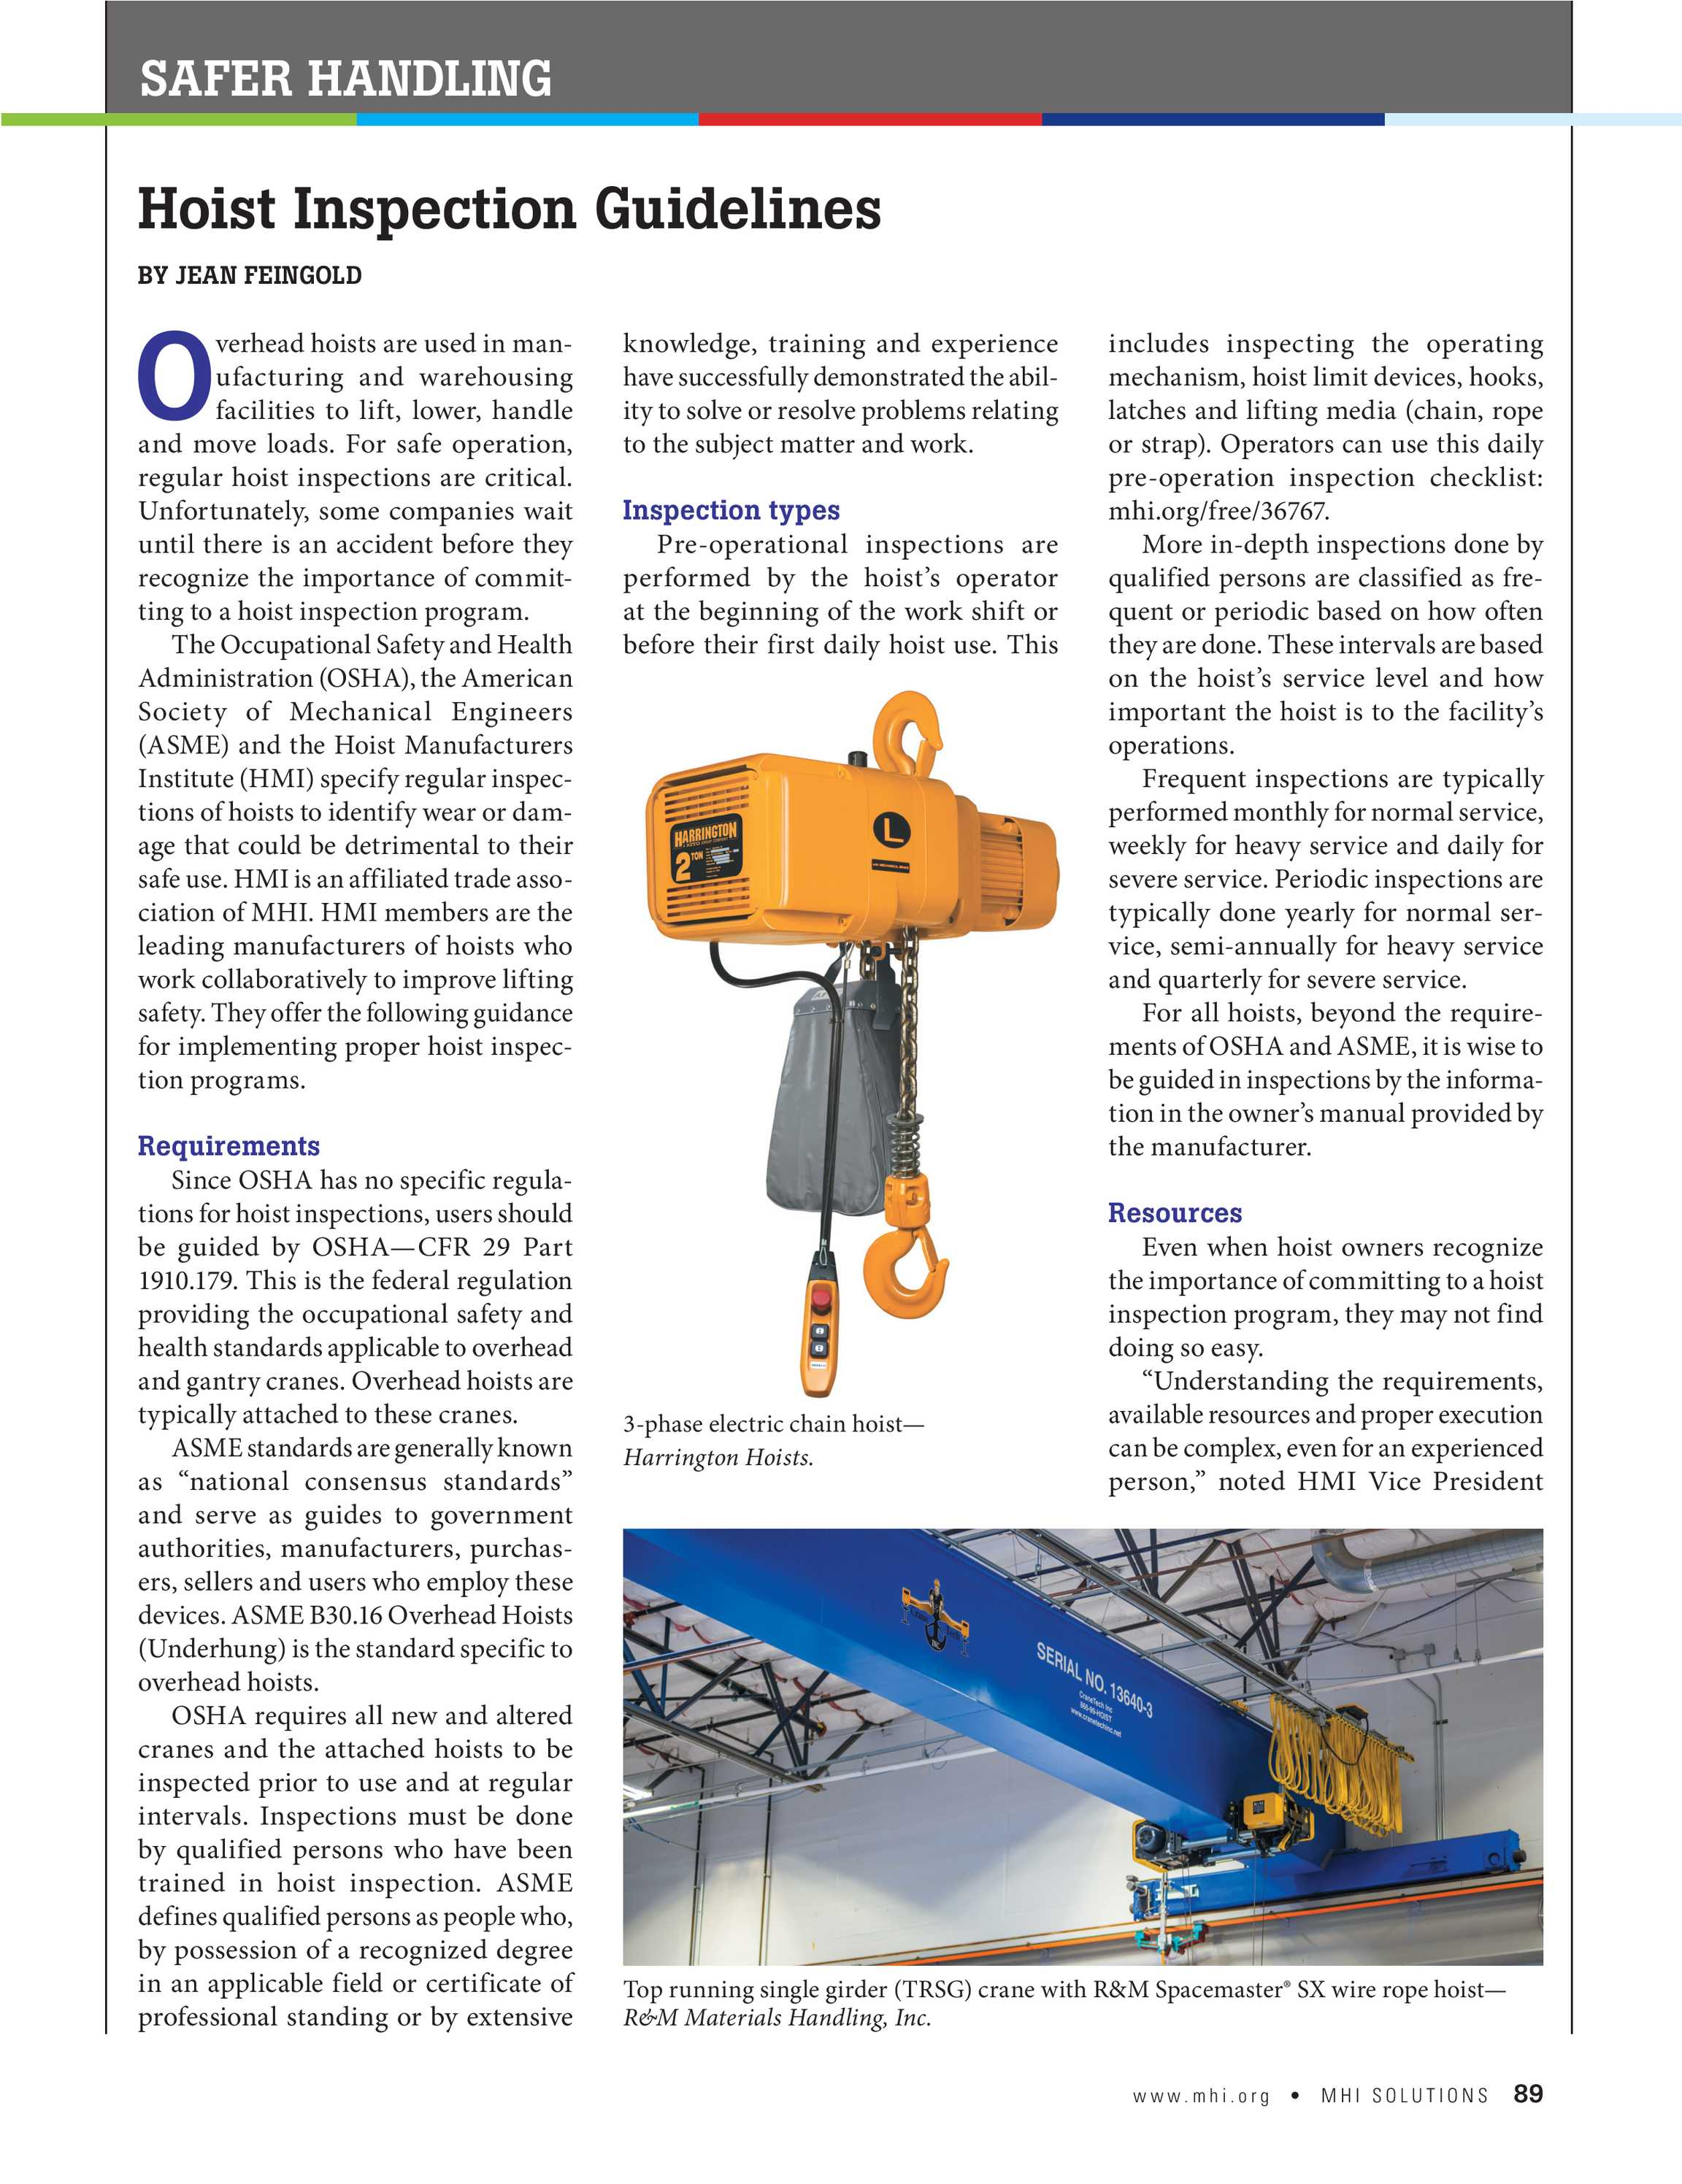 MHI Solutions (MHIQ) - Volume 7, Issue 3 - page 89